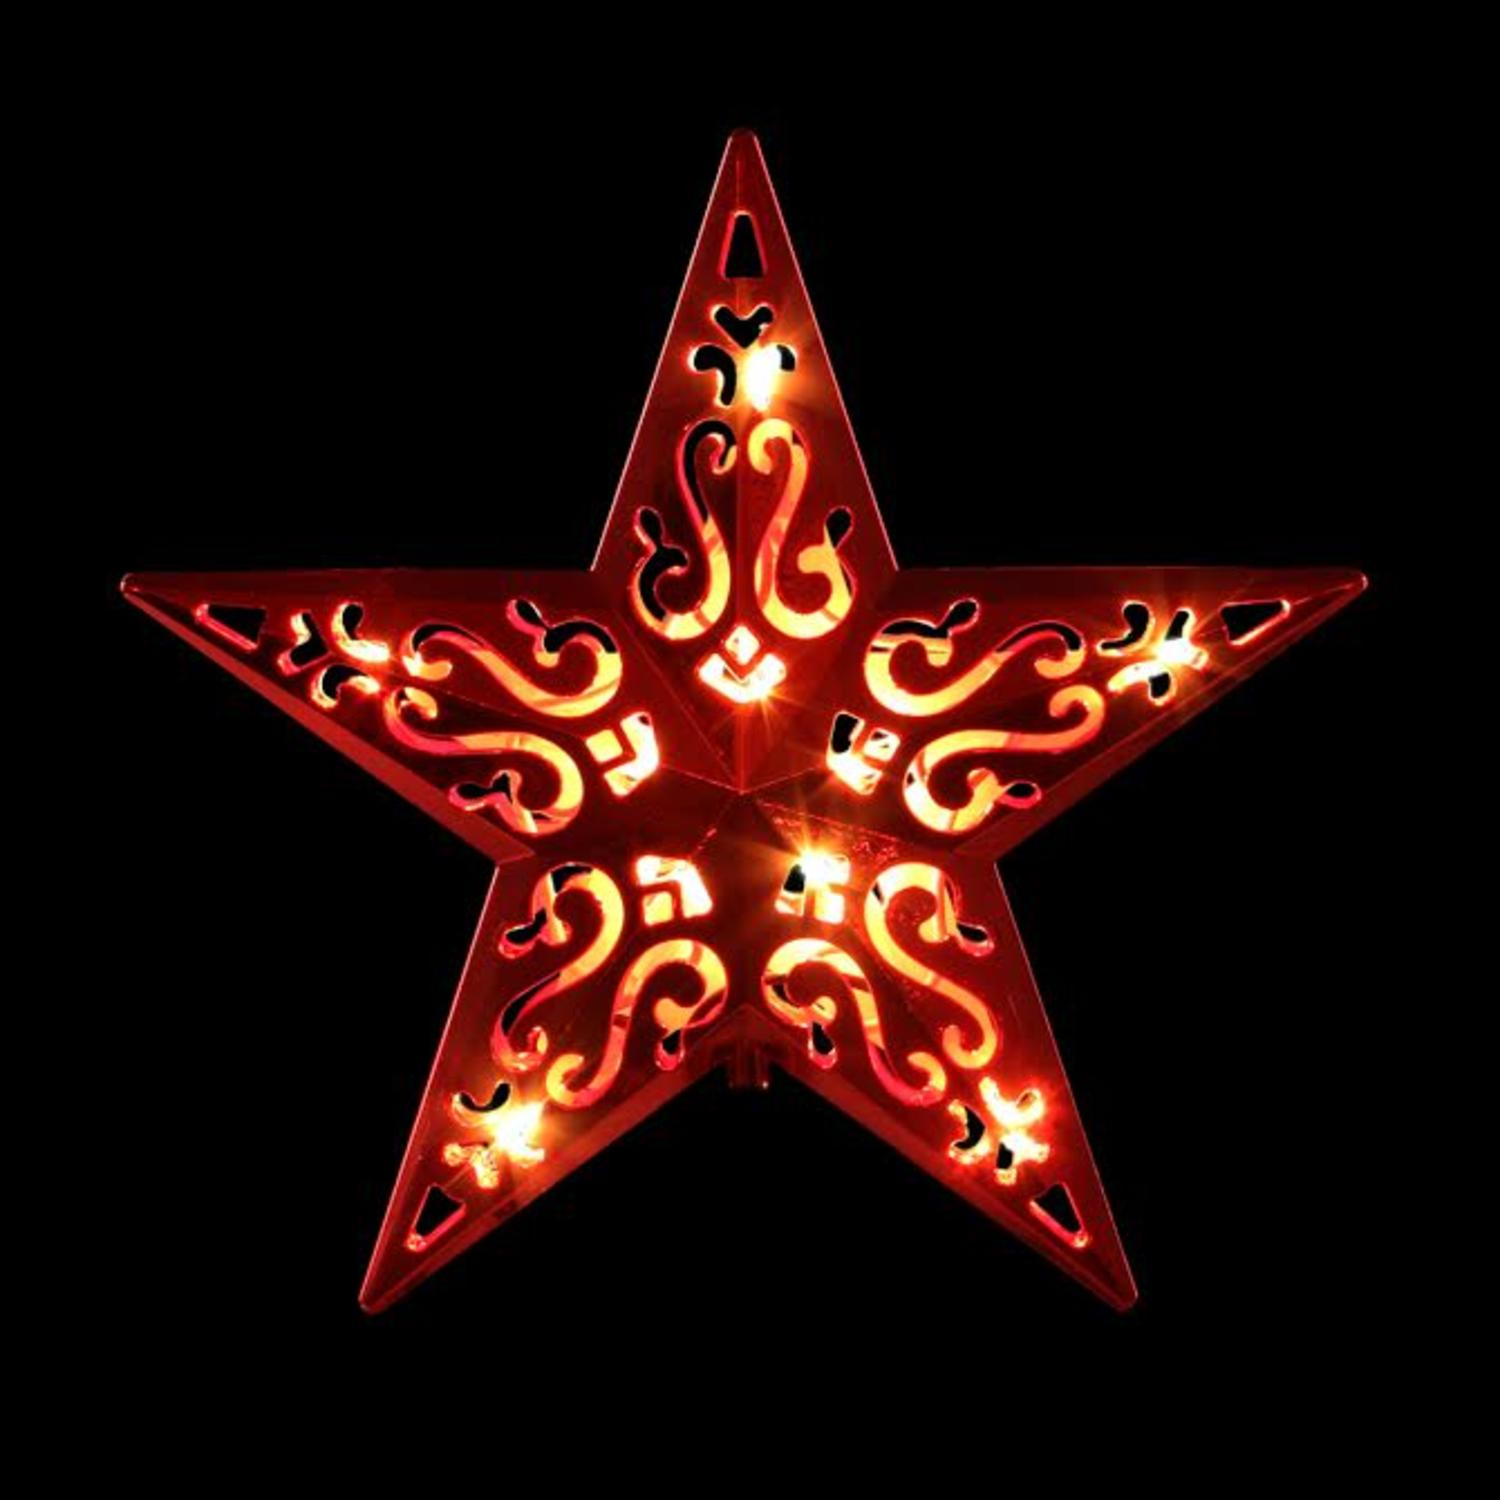 8 Lighted Red Cutout Design Decorative Star Christmas Tree